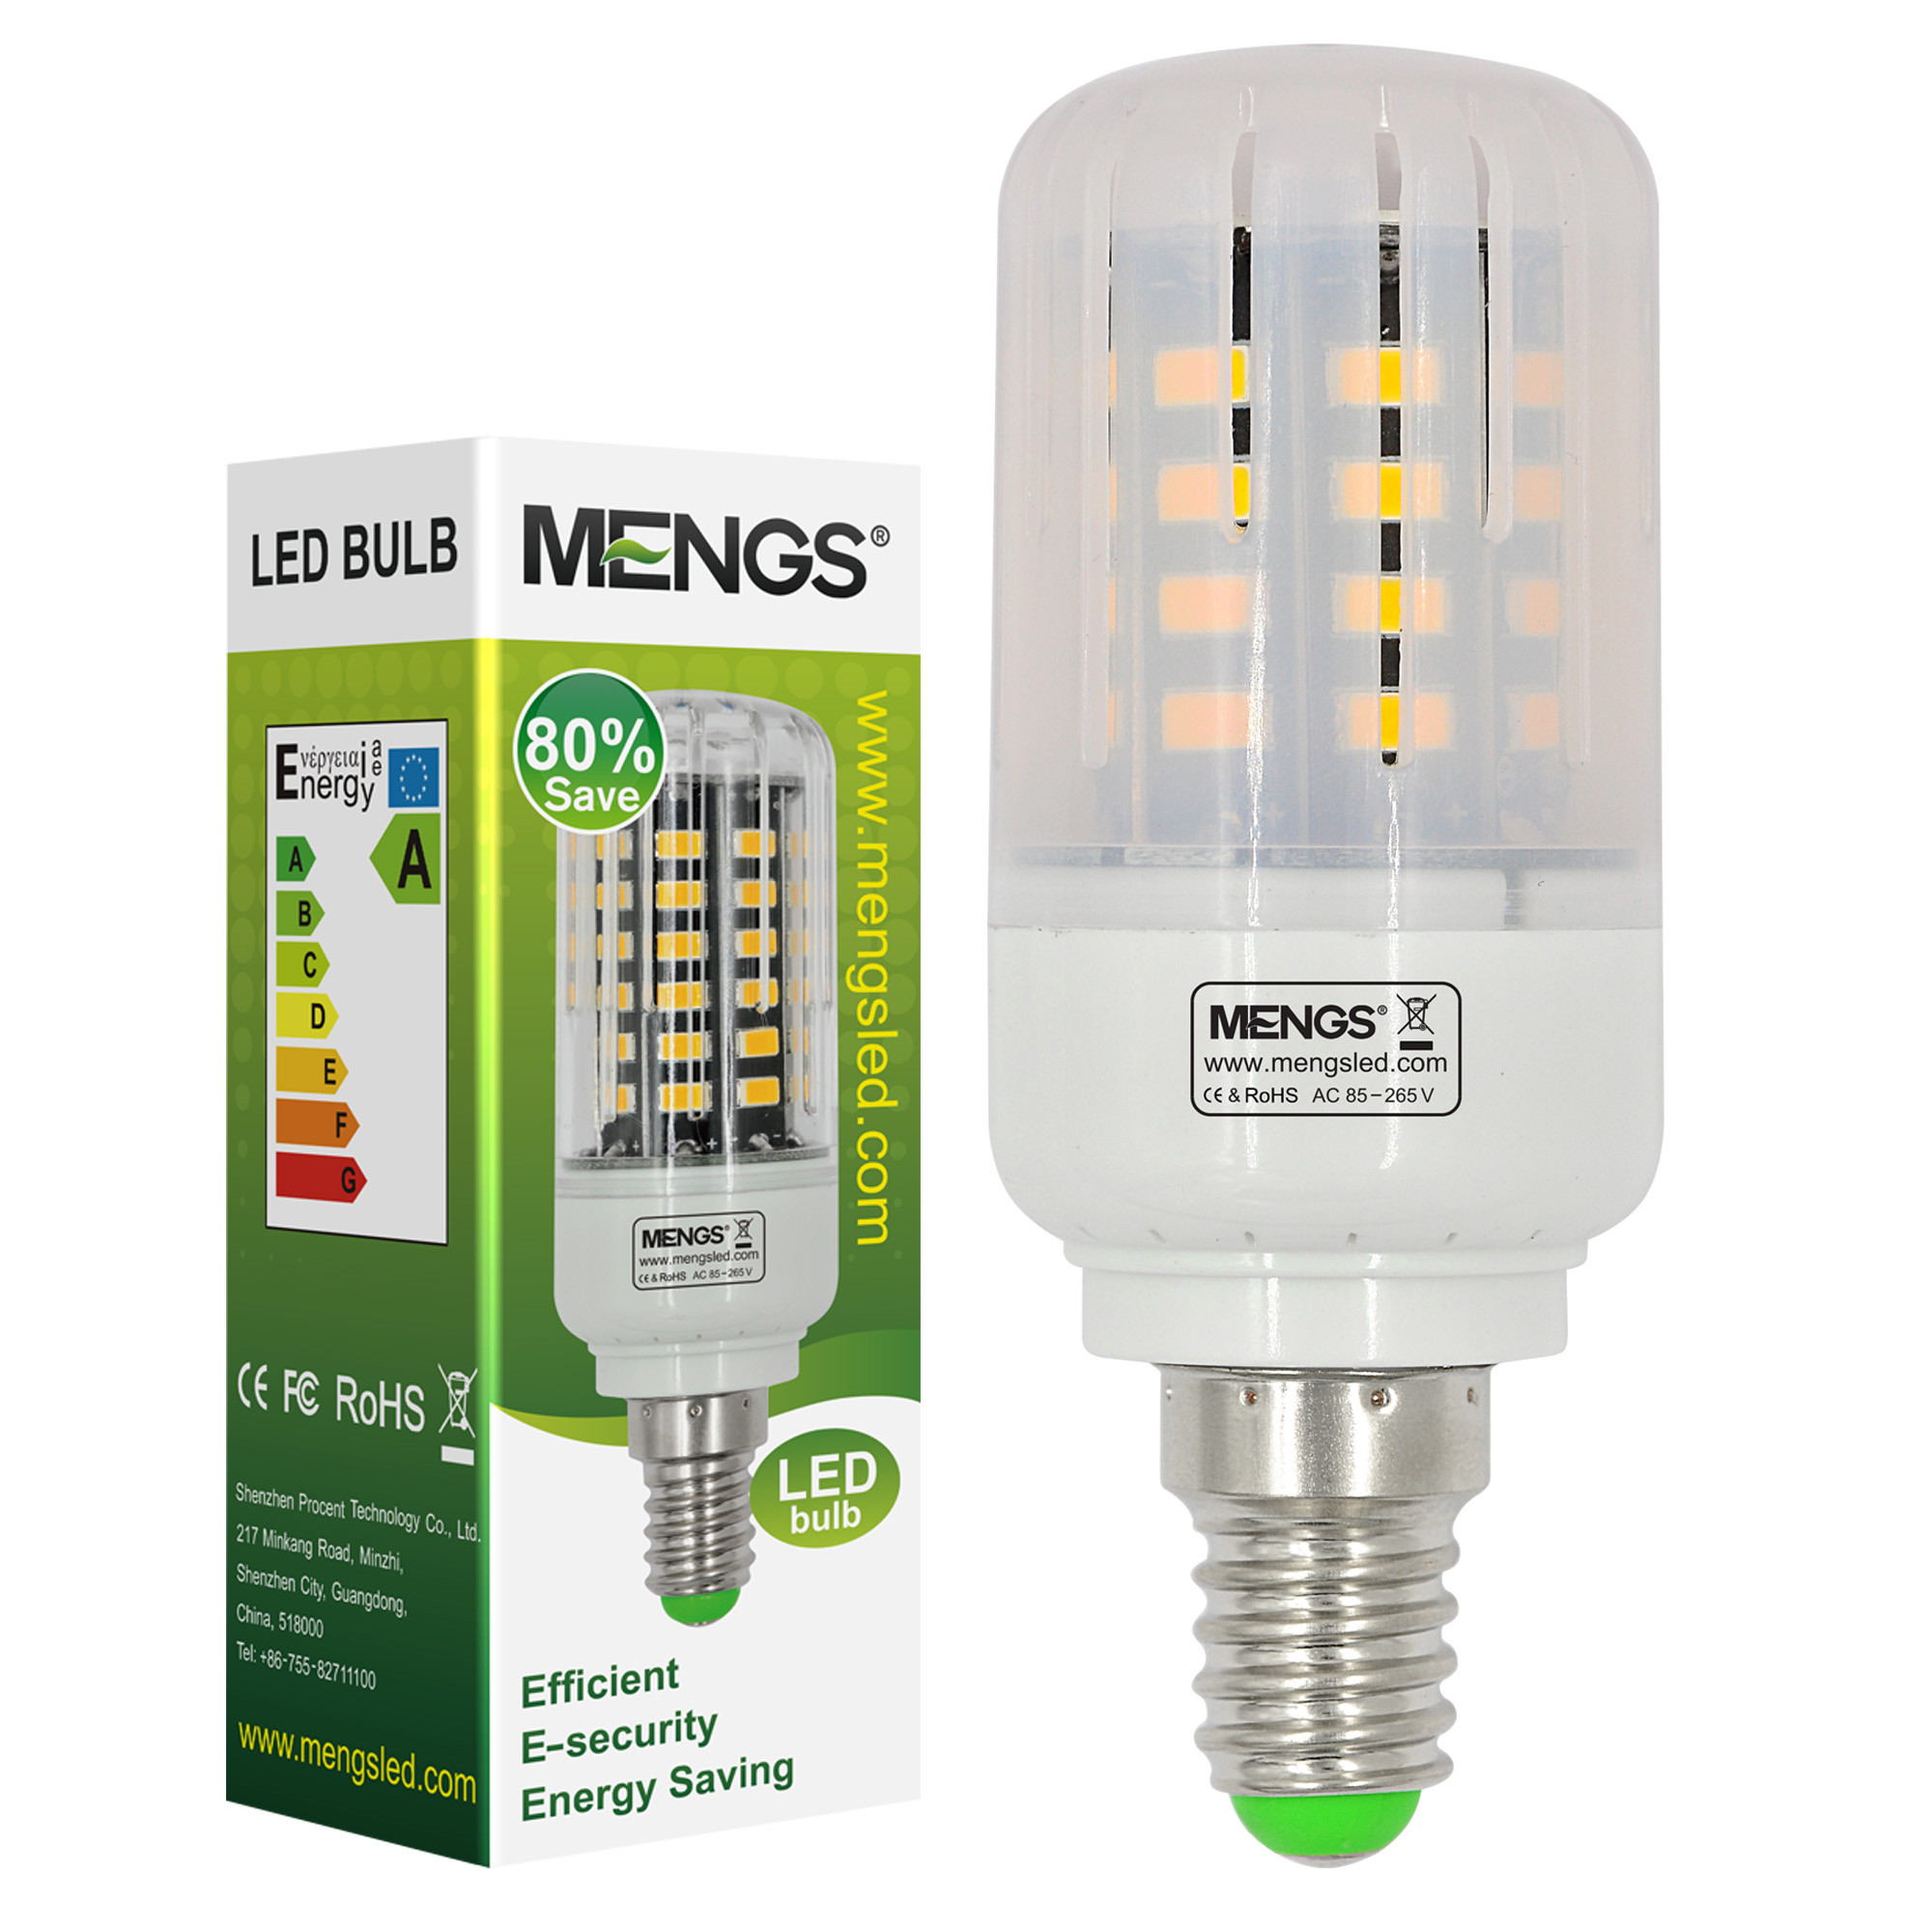 MENGS® Anti-Strobe E14 5W LED Corn Light 40x 5736 SMD LB LED Bulb Lamp In Warm White Energy-Saving Lamp